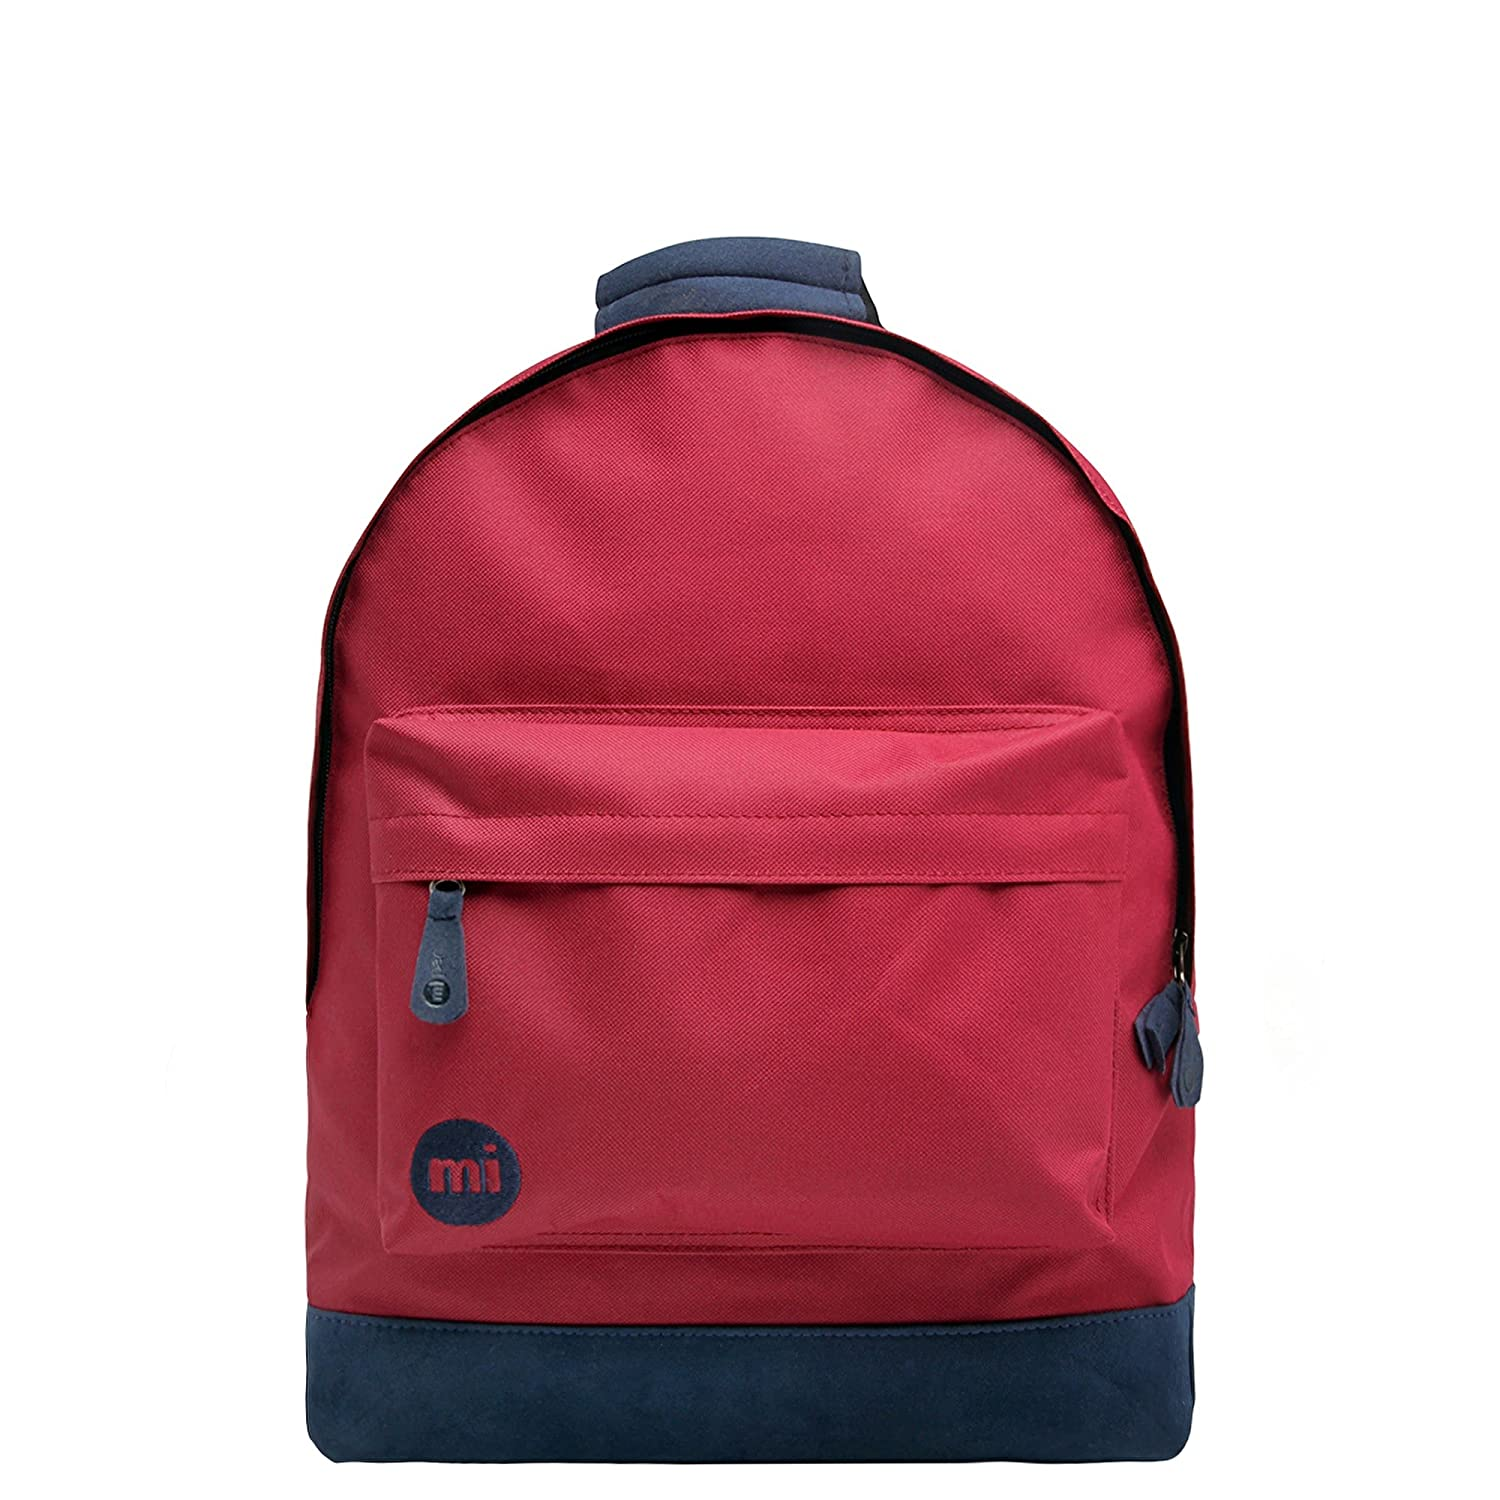 All Navy 17 litros 41 cm Mi-Pac Classic Backpack Mochila Tipo Casual